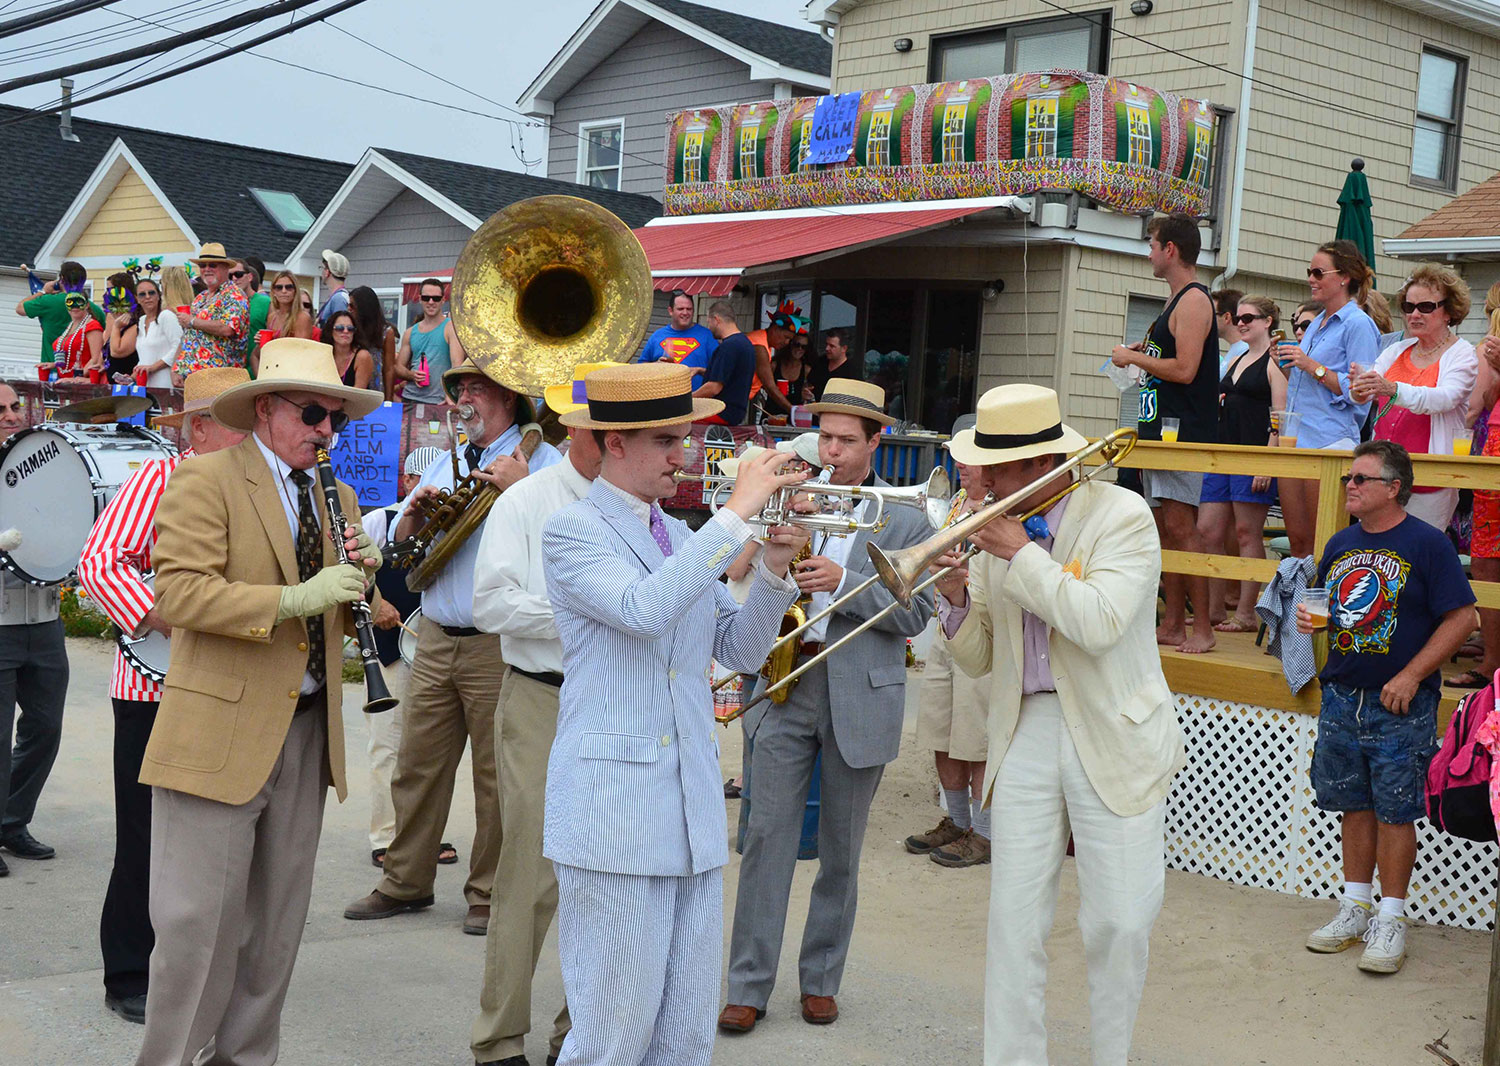 Michael Arenella And The Dreamland Orchestra at Breezy Mardi Gras 2013